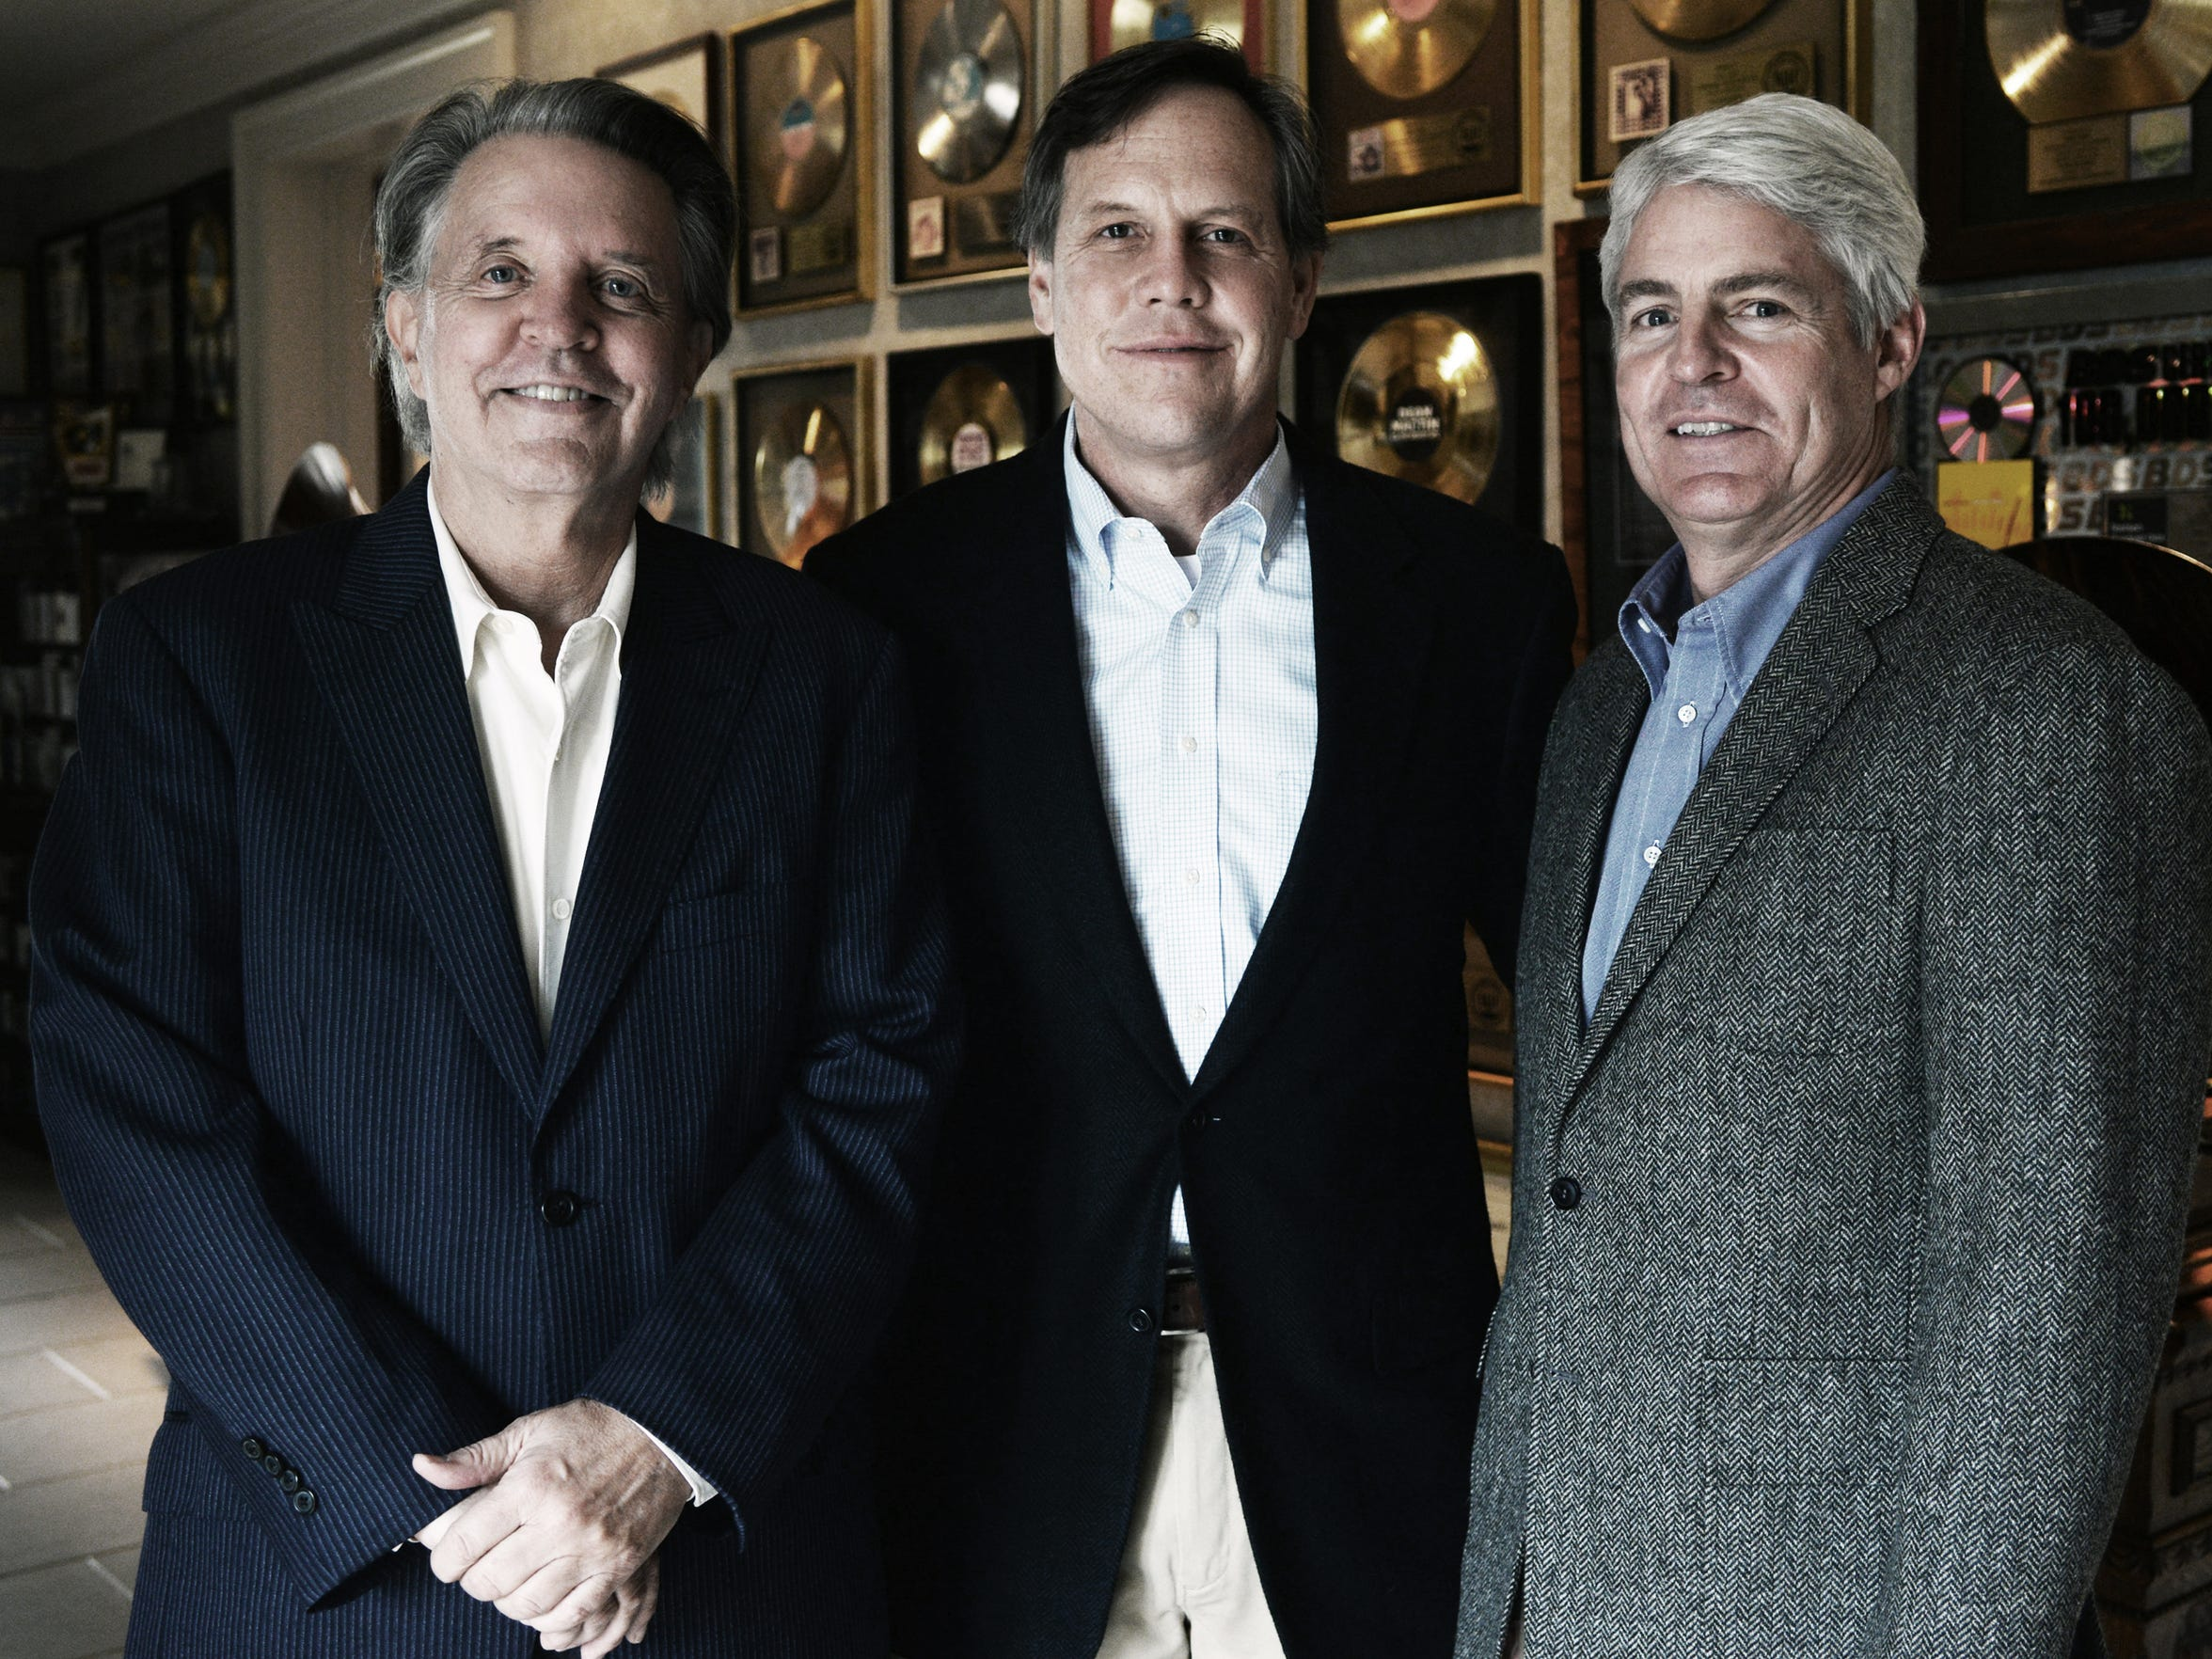 The members of Studio A Preservation Partners, from left, Mike Curb, Aubrey Preston and Chuck Elcan.